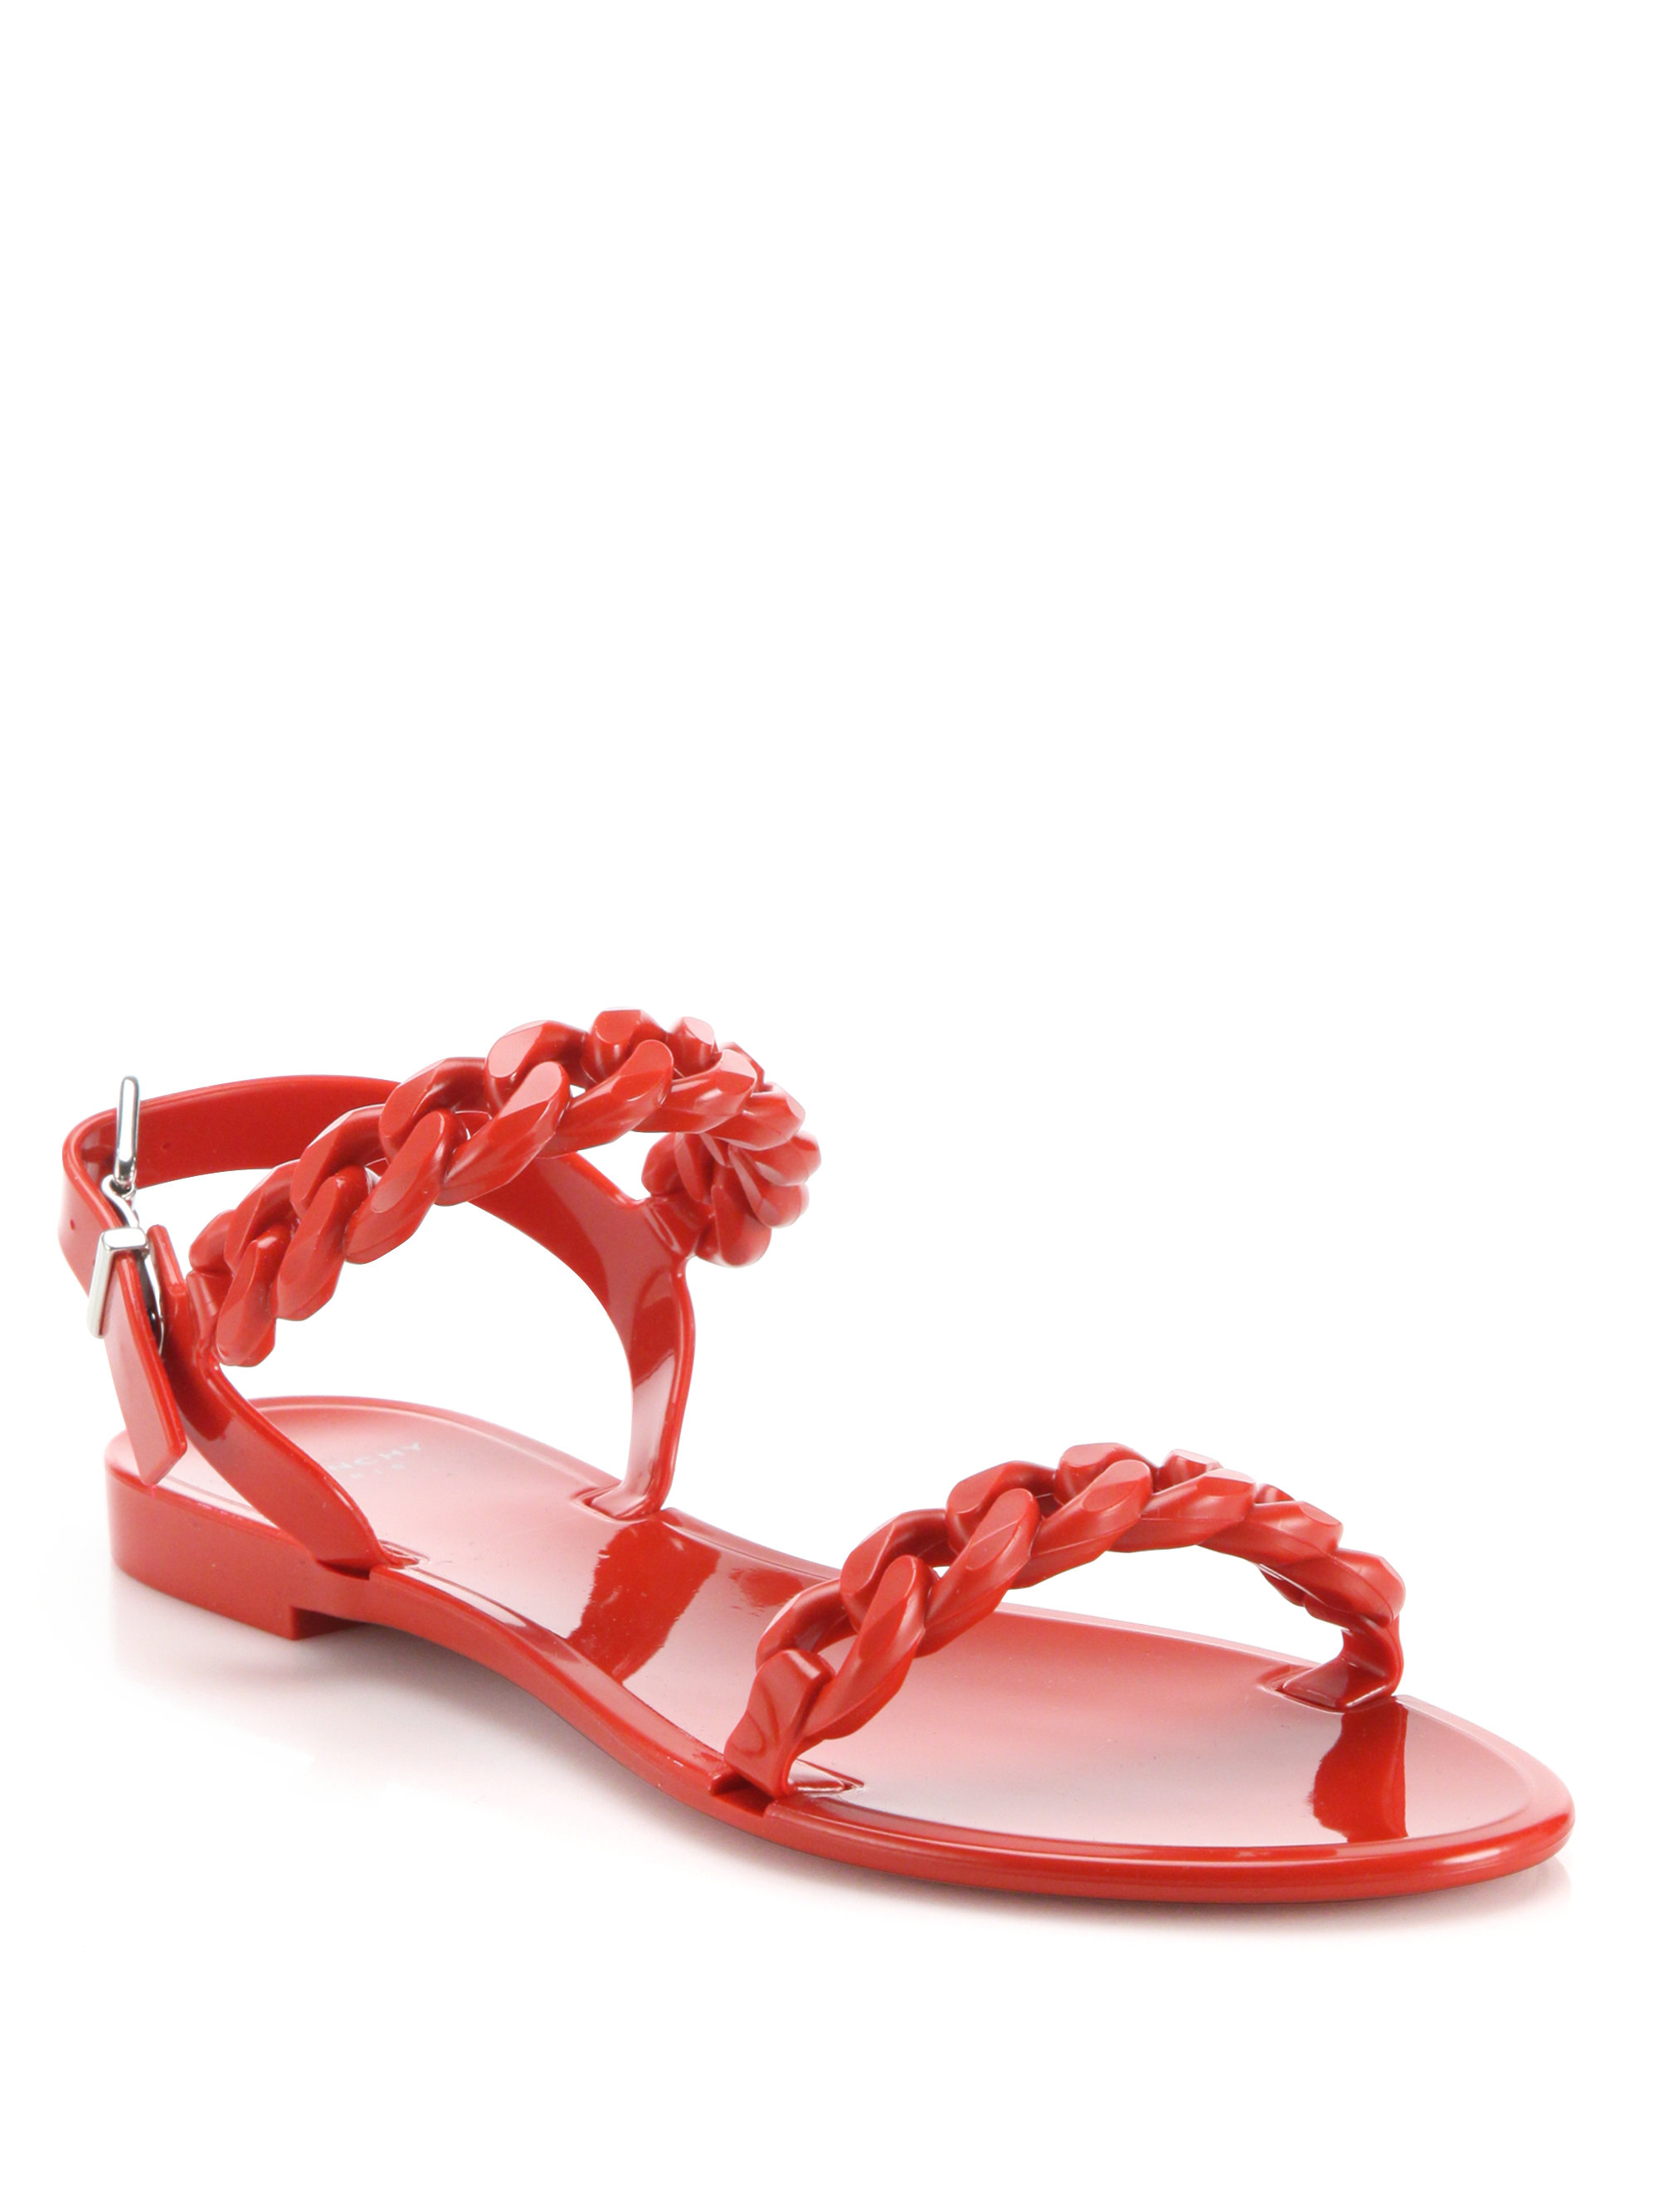 b1d4bcd5563a Lyst - Givenchy Nea Jelly Flat Sandals in Red